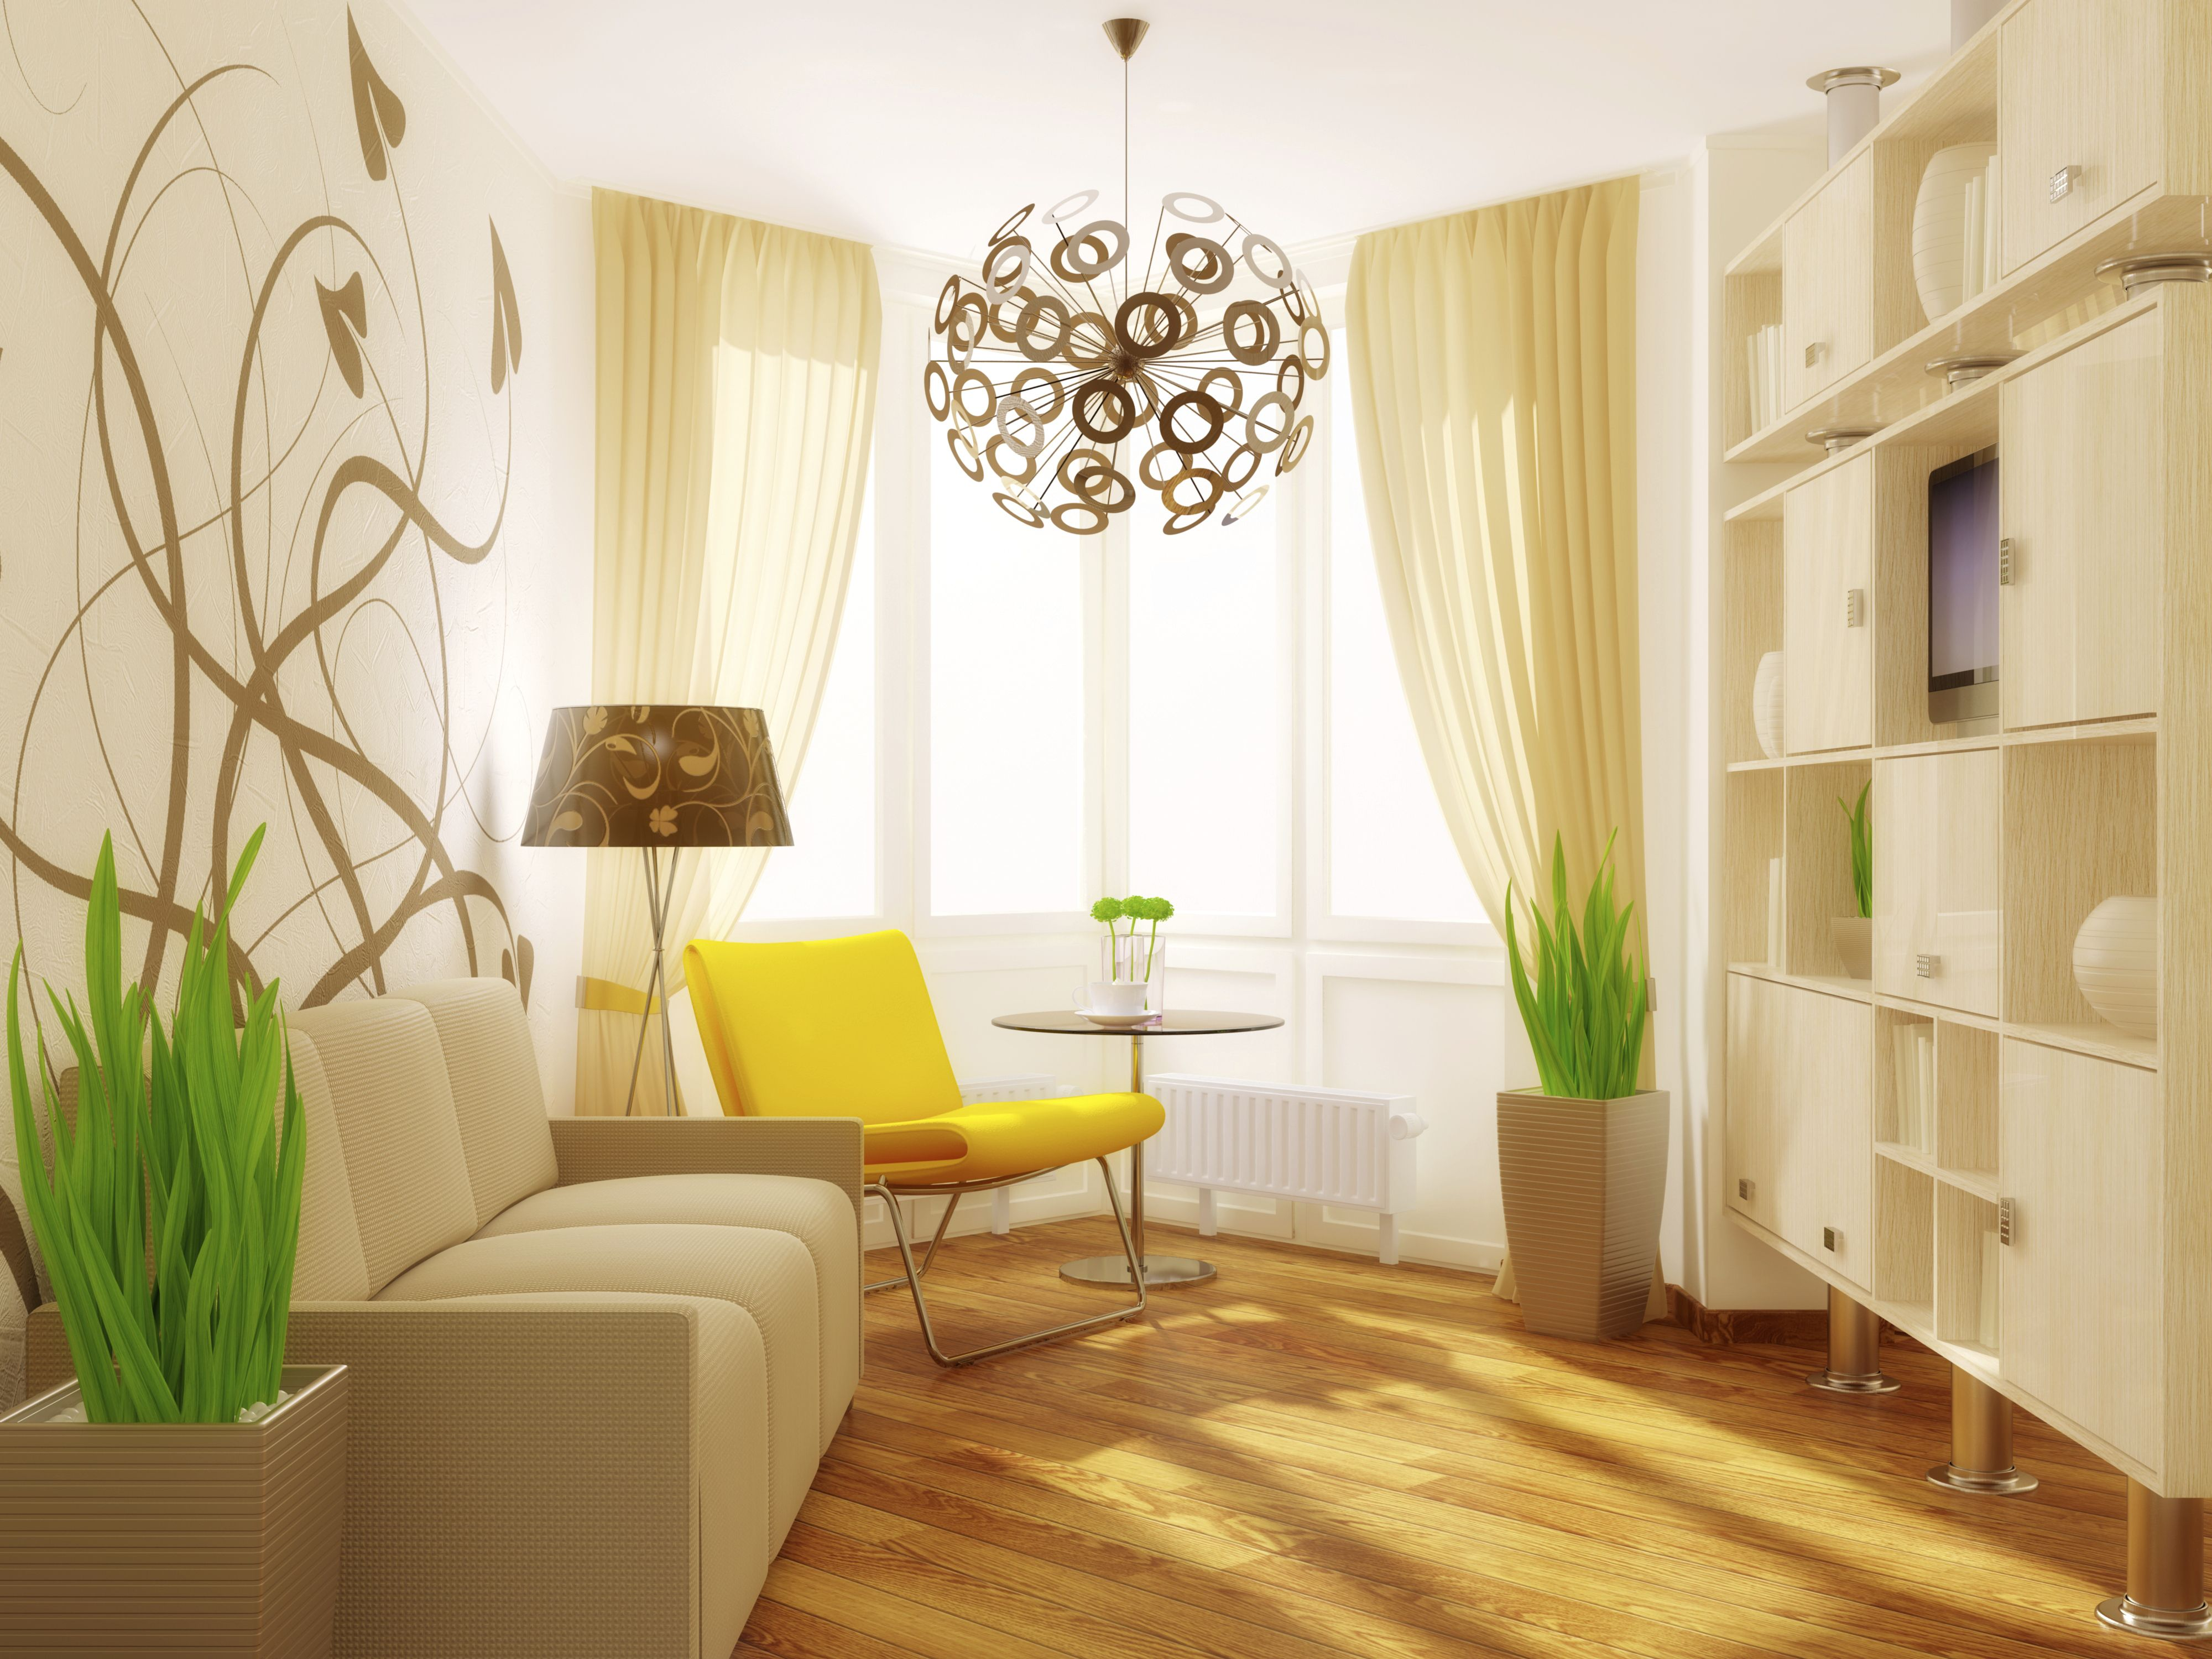 20 Ways to Make a Small Room Look Bigger - Lioness Woman\'s Club ...